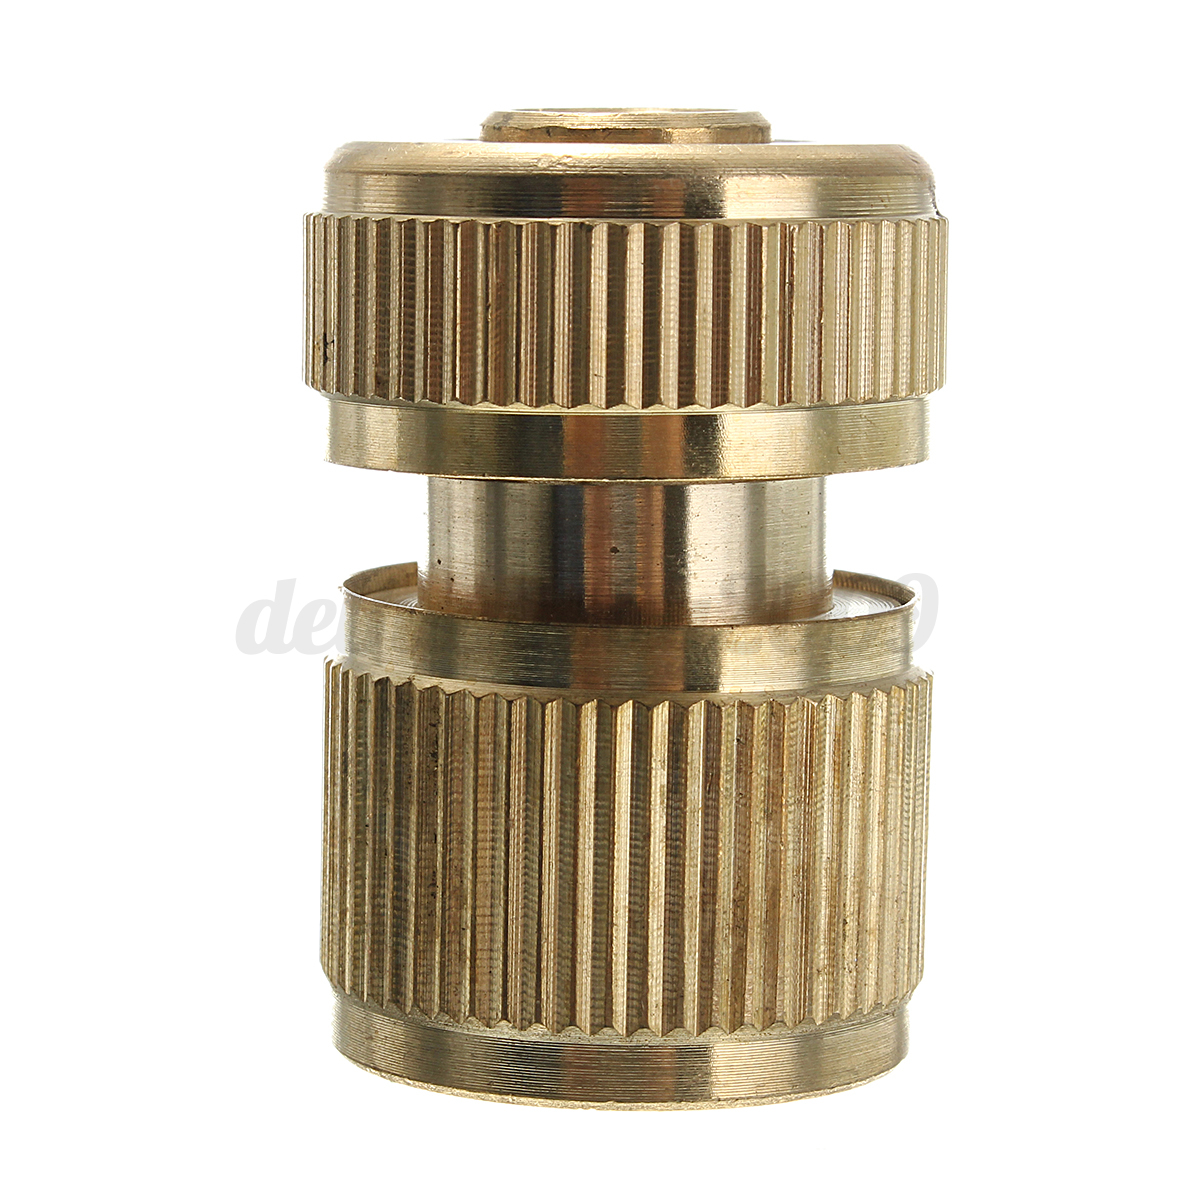 Brass water hose pipe fitting garden tap adaptor quick